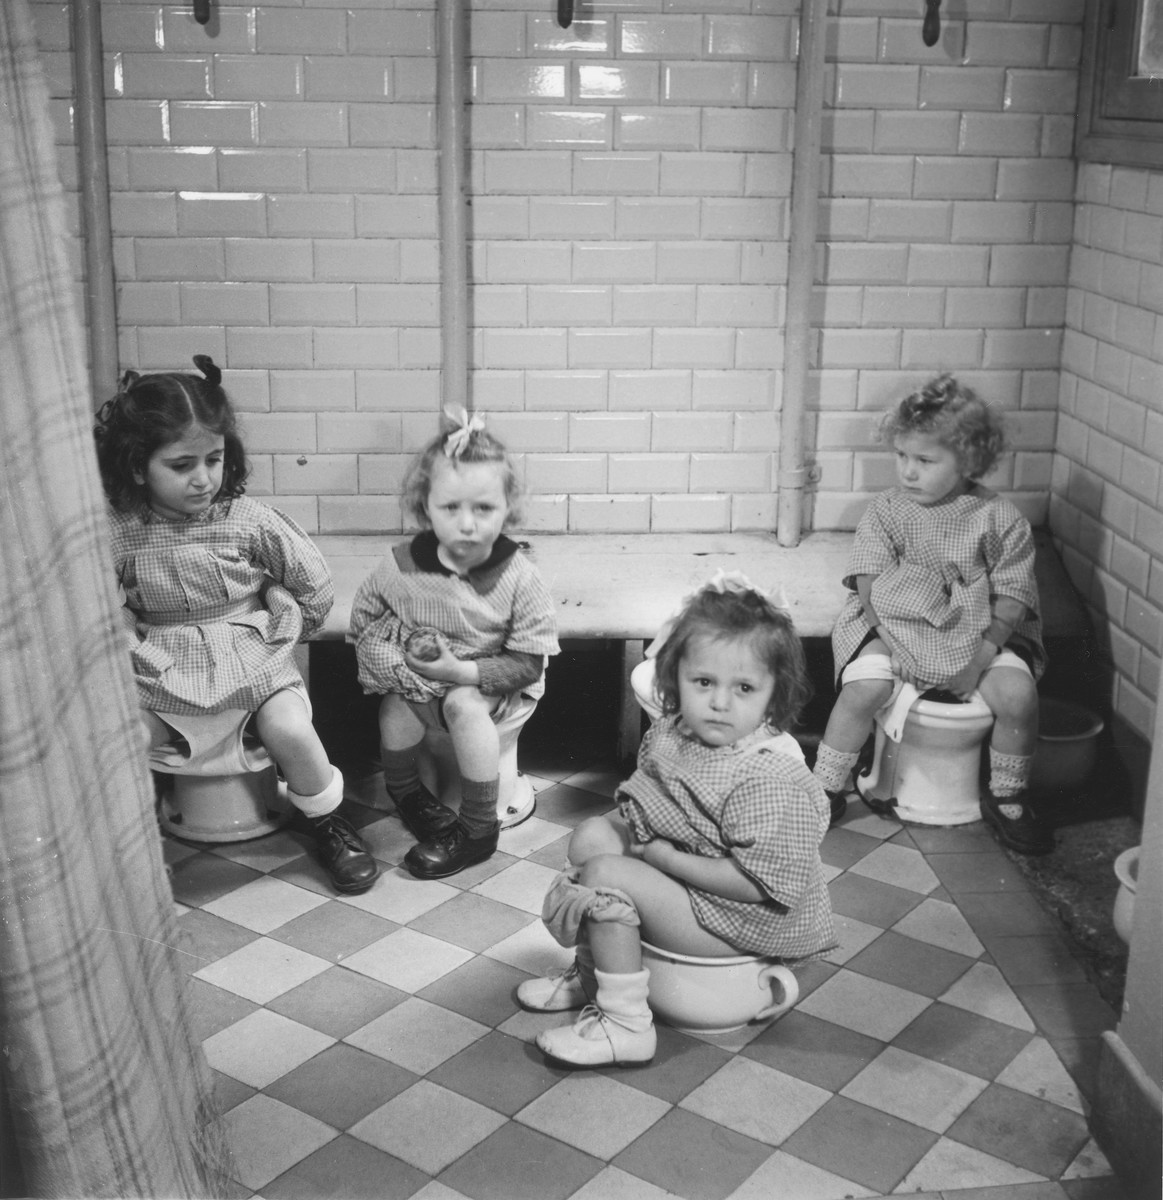 Four little girls sit on the potty in the Petit Monde children's home.